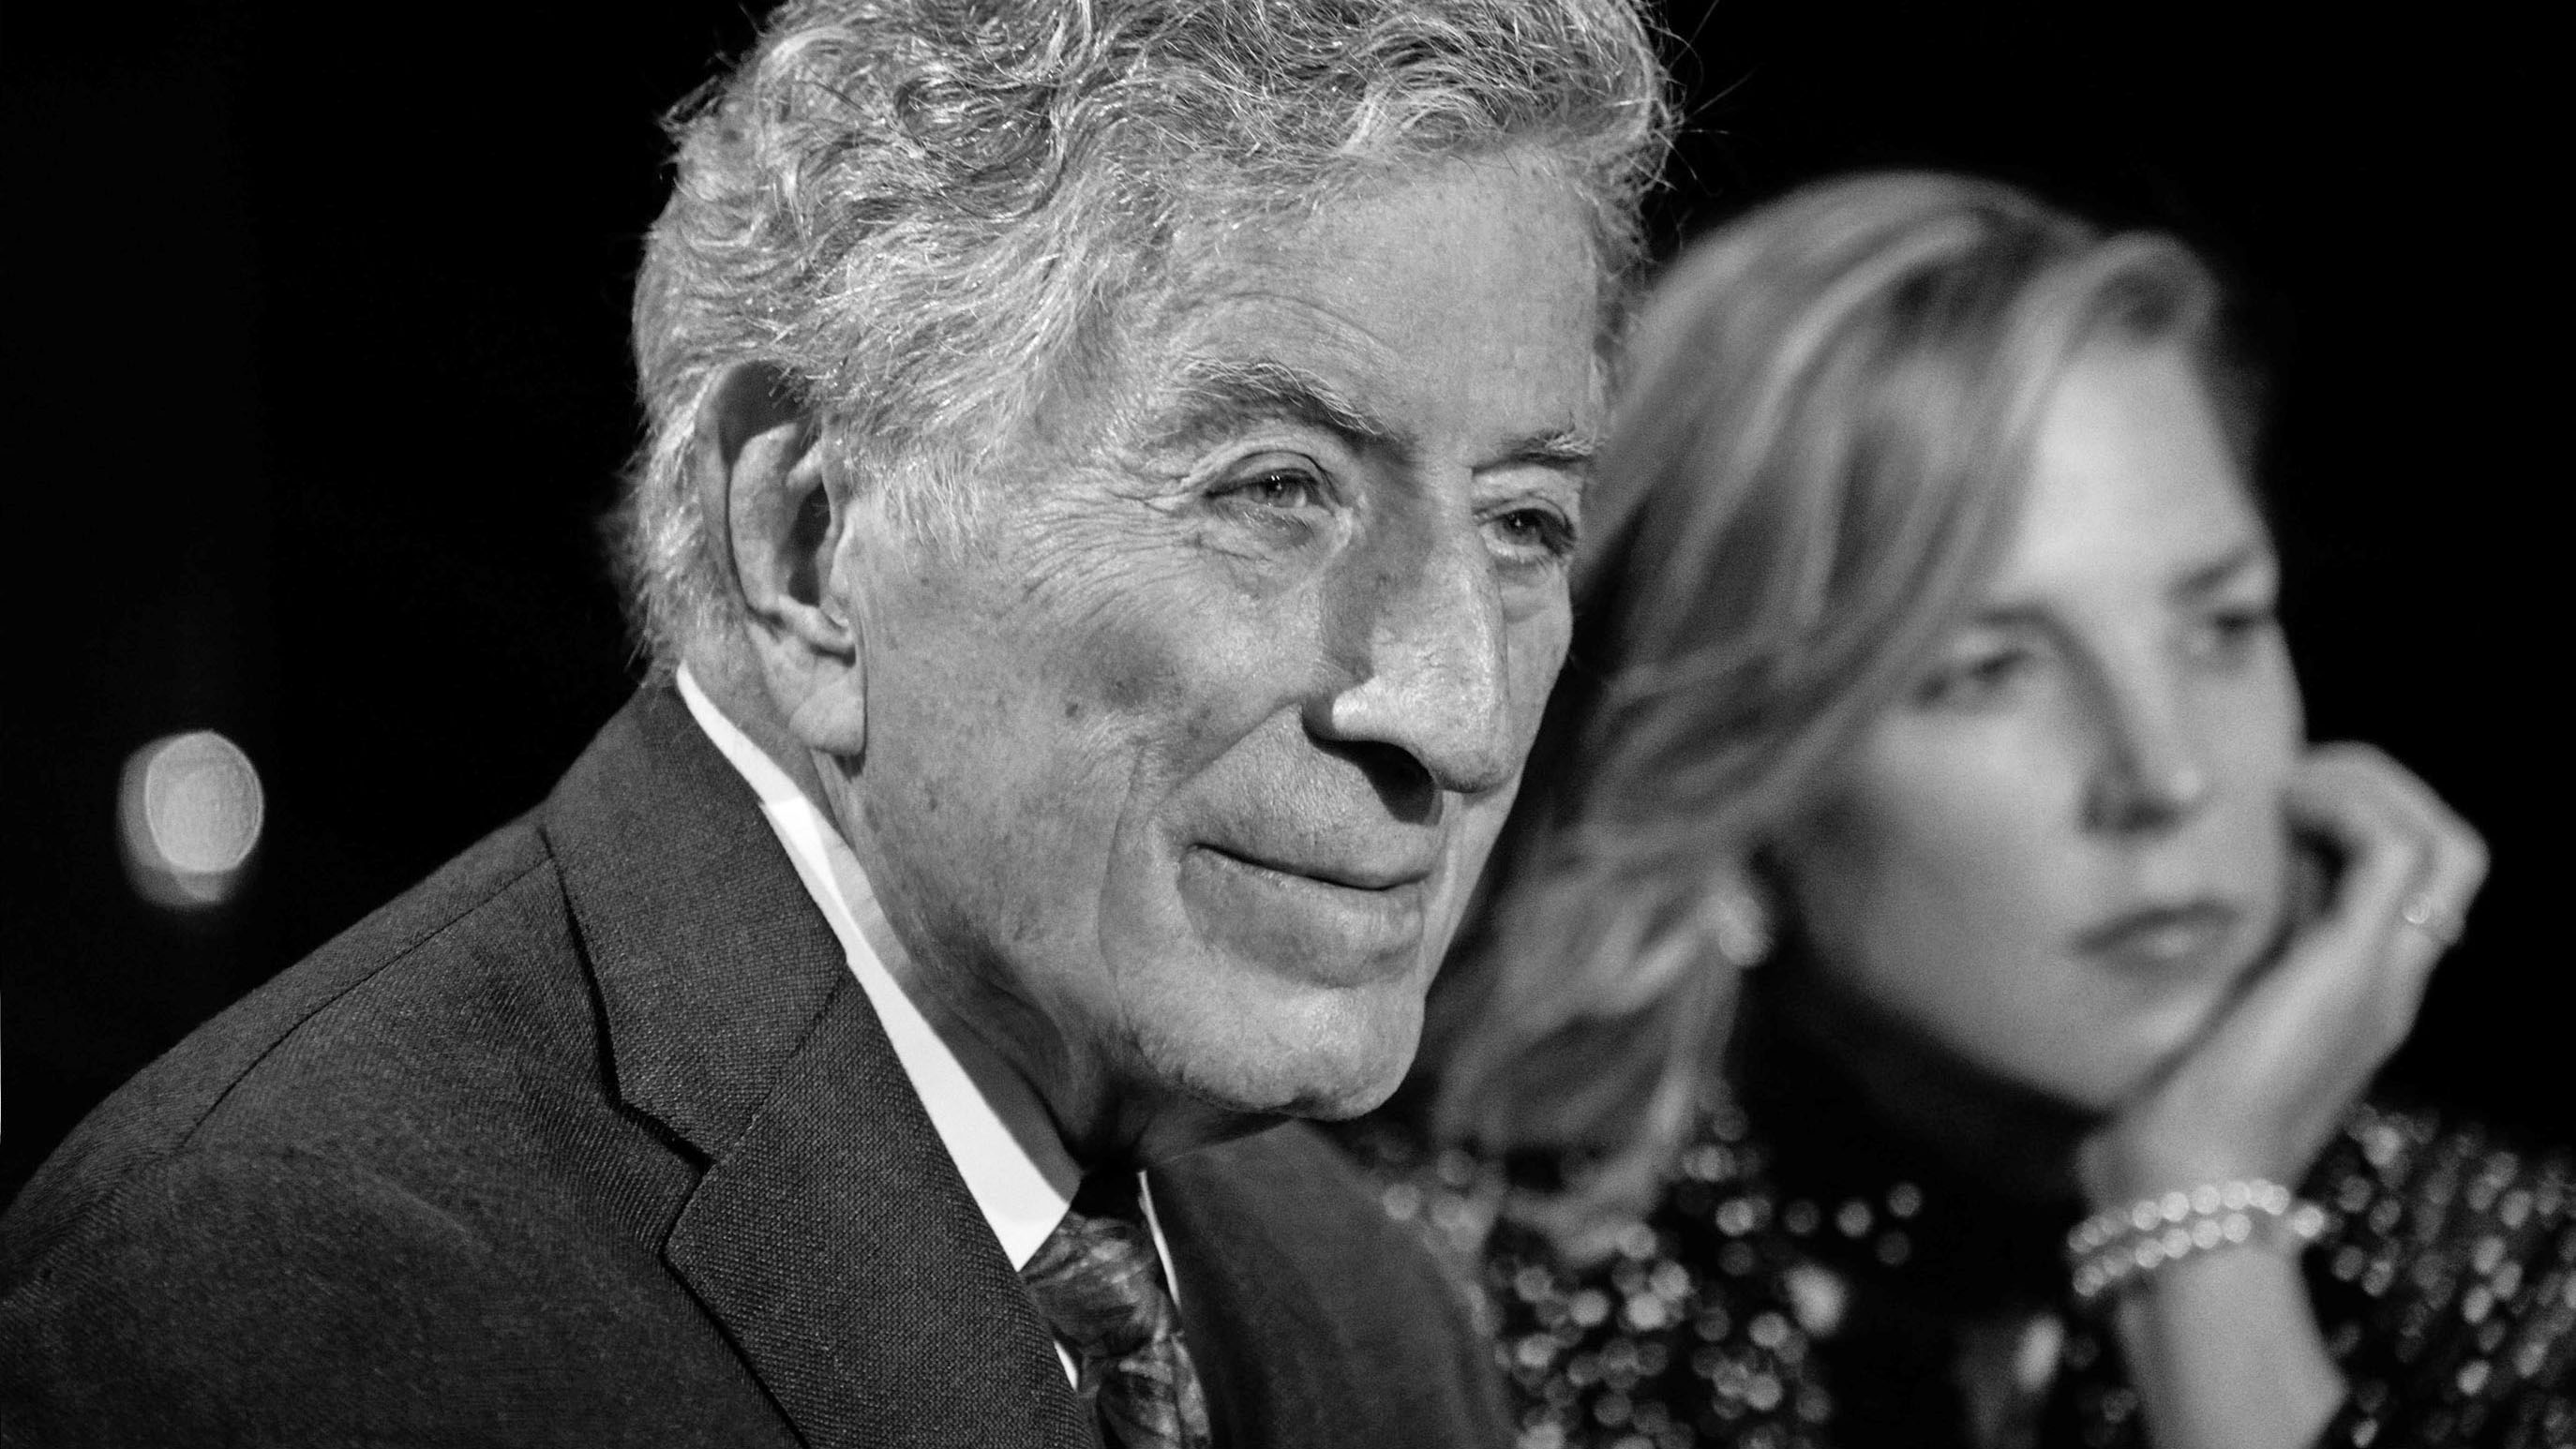 WHRO - Great Performances: Tony Bennett and Diana Krall, Dec 1